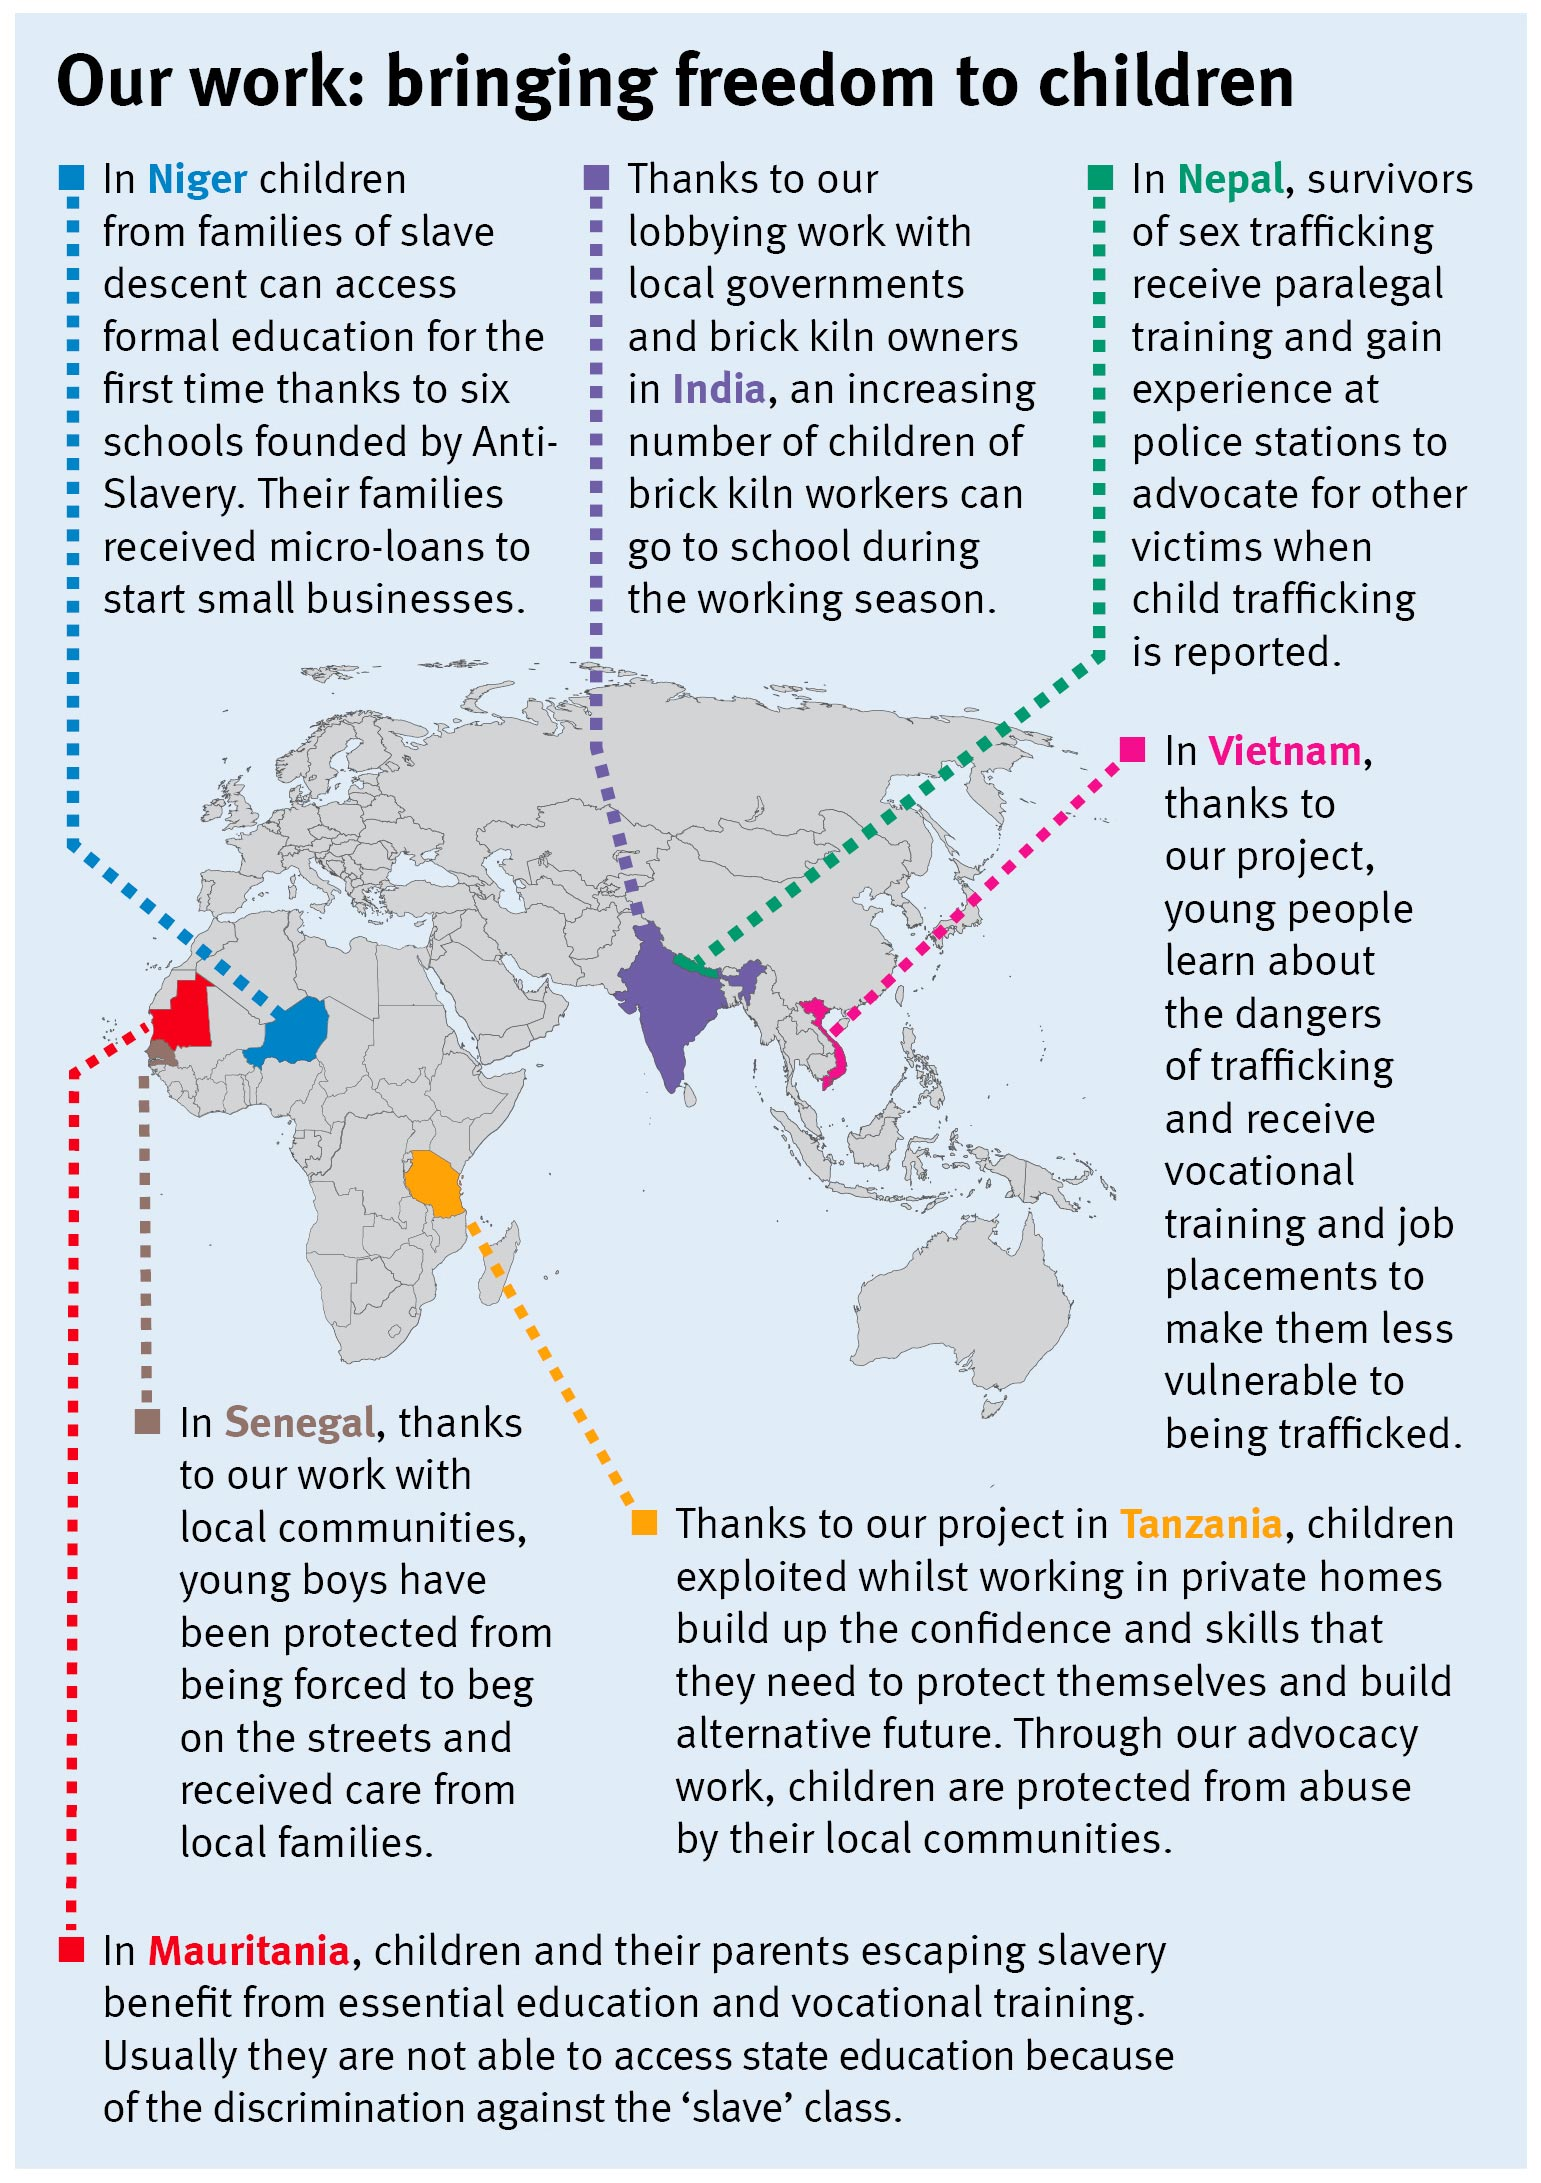 World map of Anti-Slavery's work with children